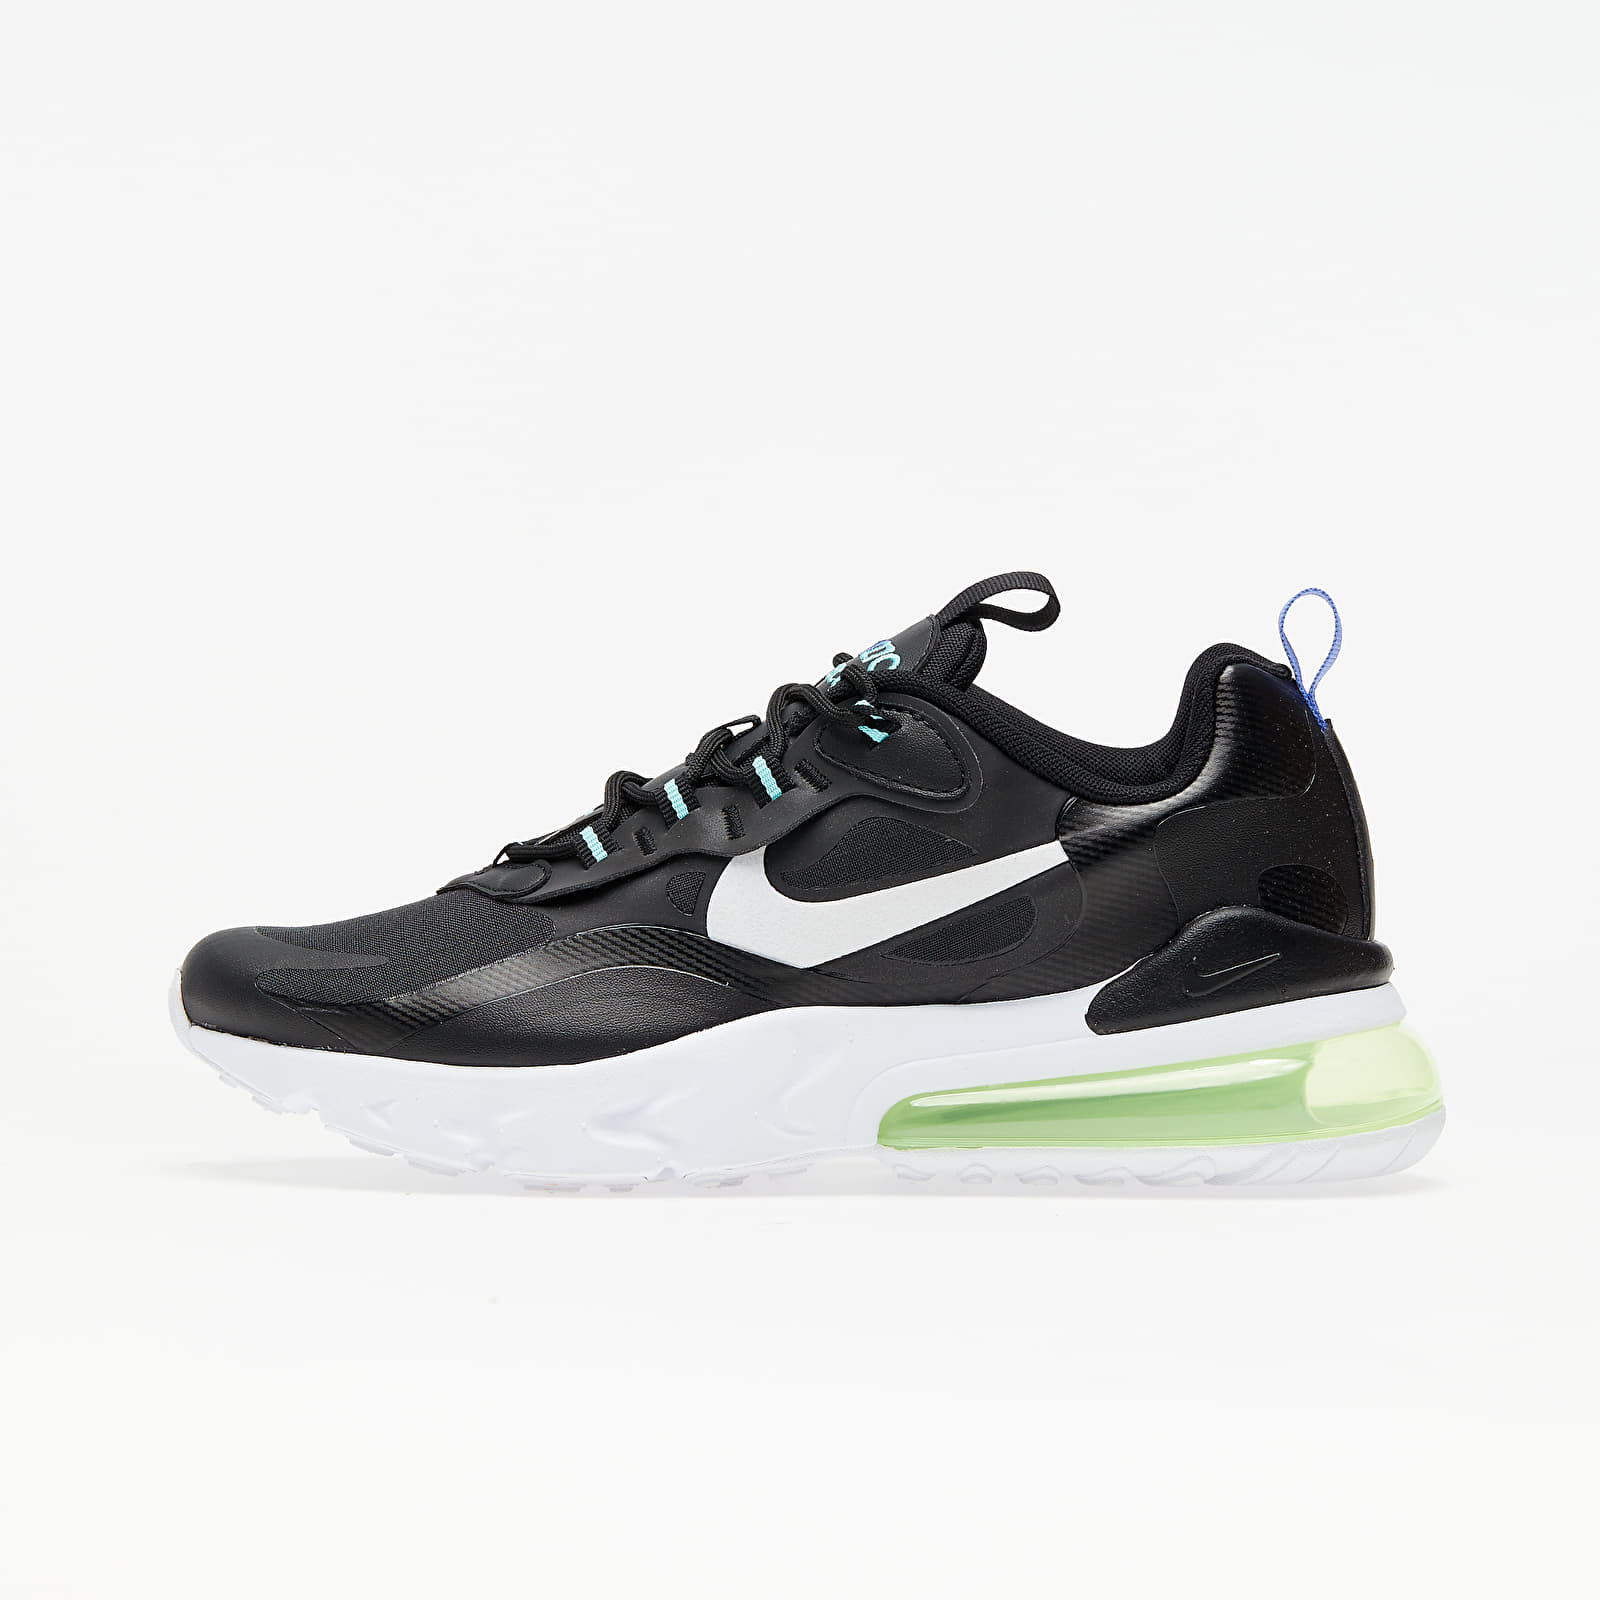 Nike Air Max 270 React GS Black/ White-Laser Orange-Aurora Green EUR 38